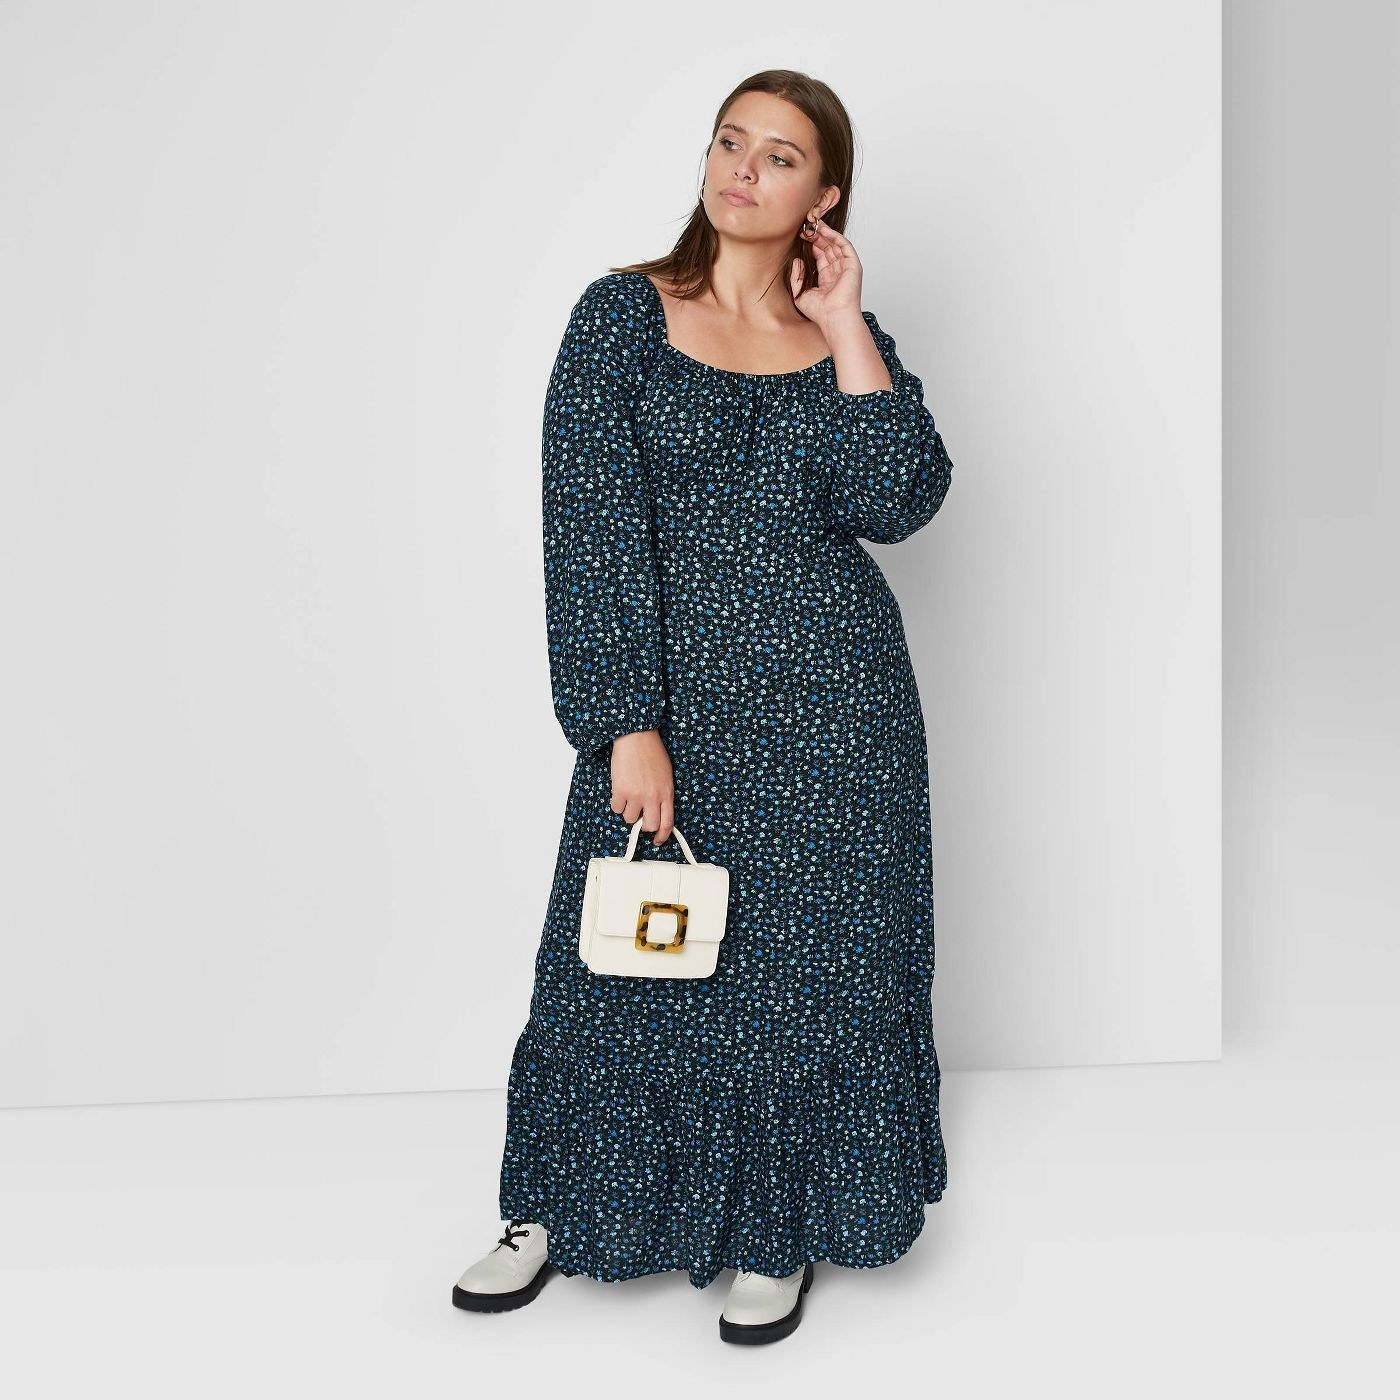 Model wearing the scoop elastic neck ankle-length dress with puff sleeves and a ruffle at the bottom